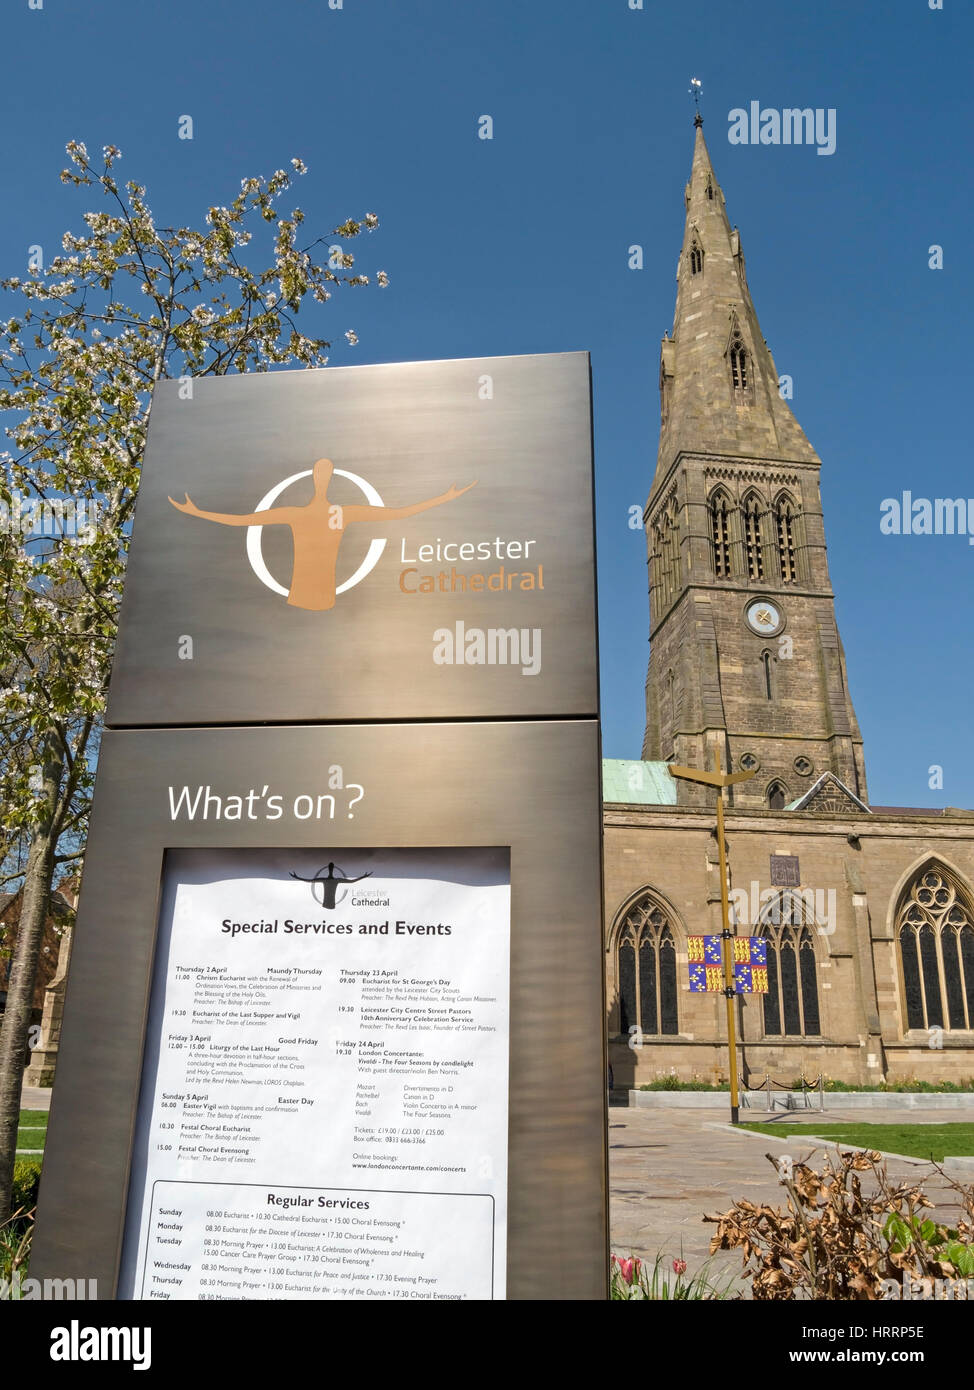 What's On sign in front of Leicester Cathedral, England, UK - Stock Image